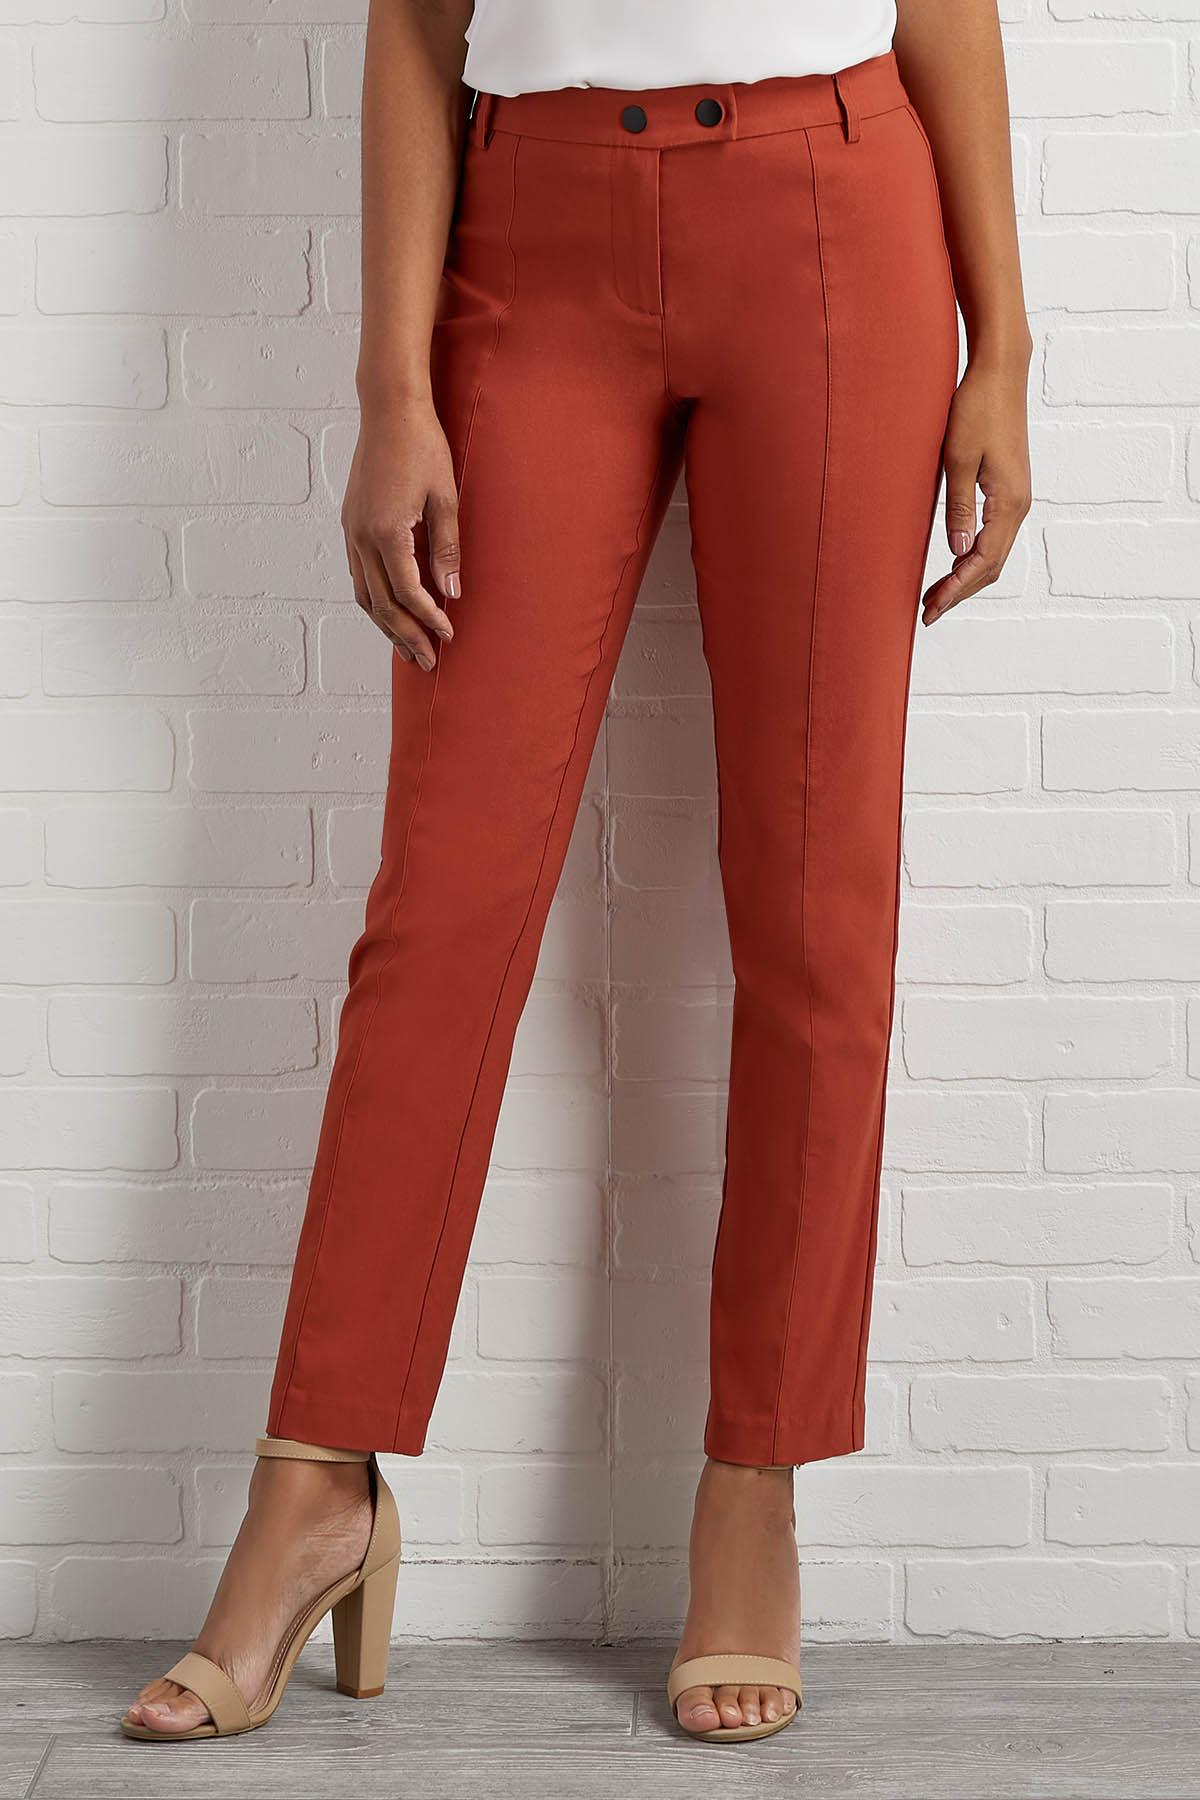 Middle Ground Pants